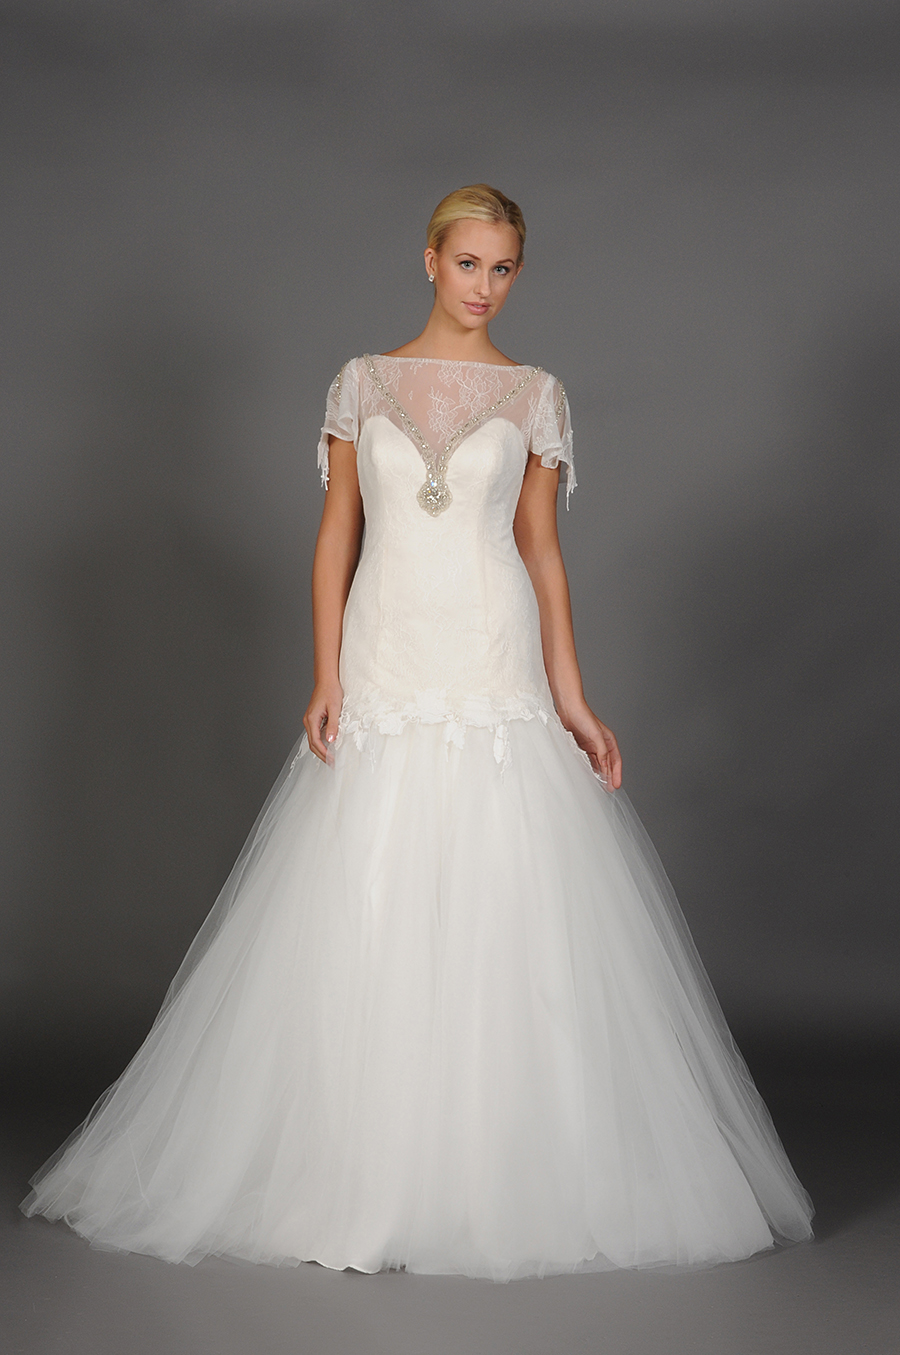 Couture collection wedding dresses affordable for Affordable couture wedding dresses